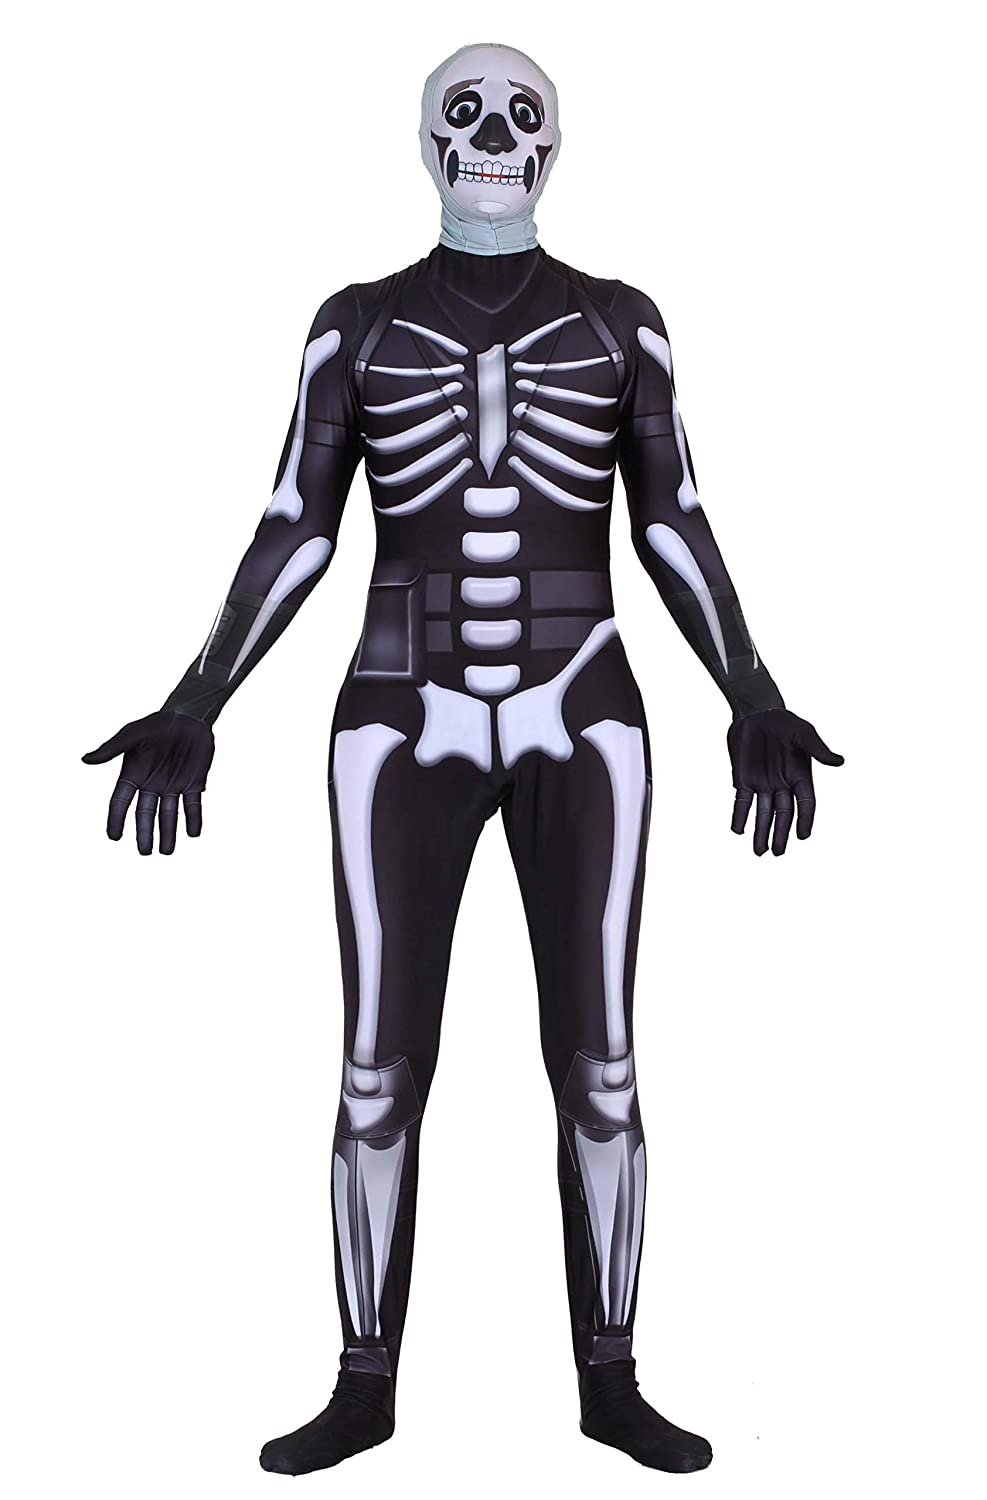 Riekinc Halloween Spandex Zentai Cosplay Costume Skull Trooper Costume Adult/Kids